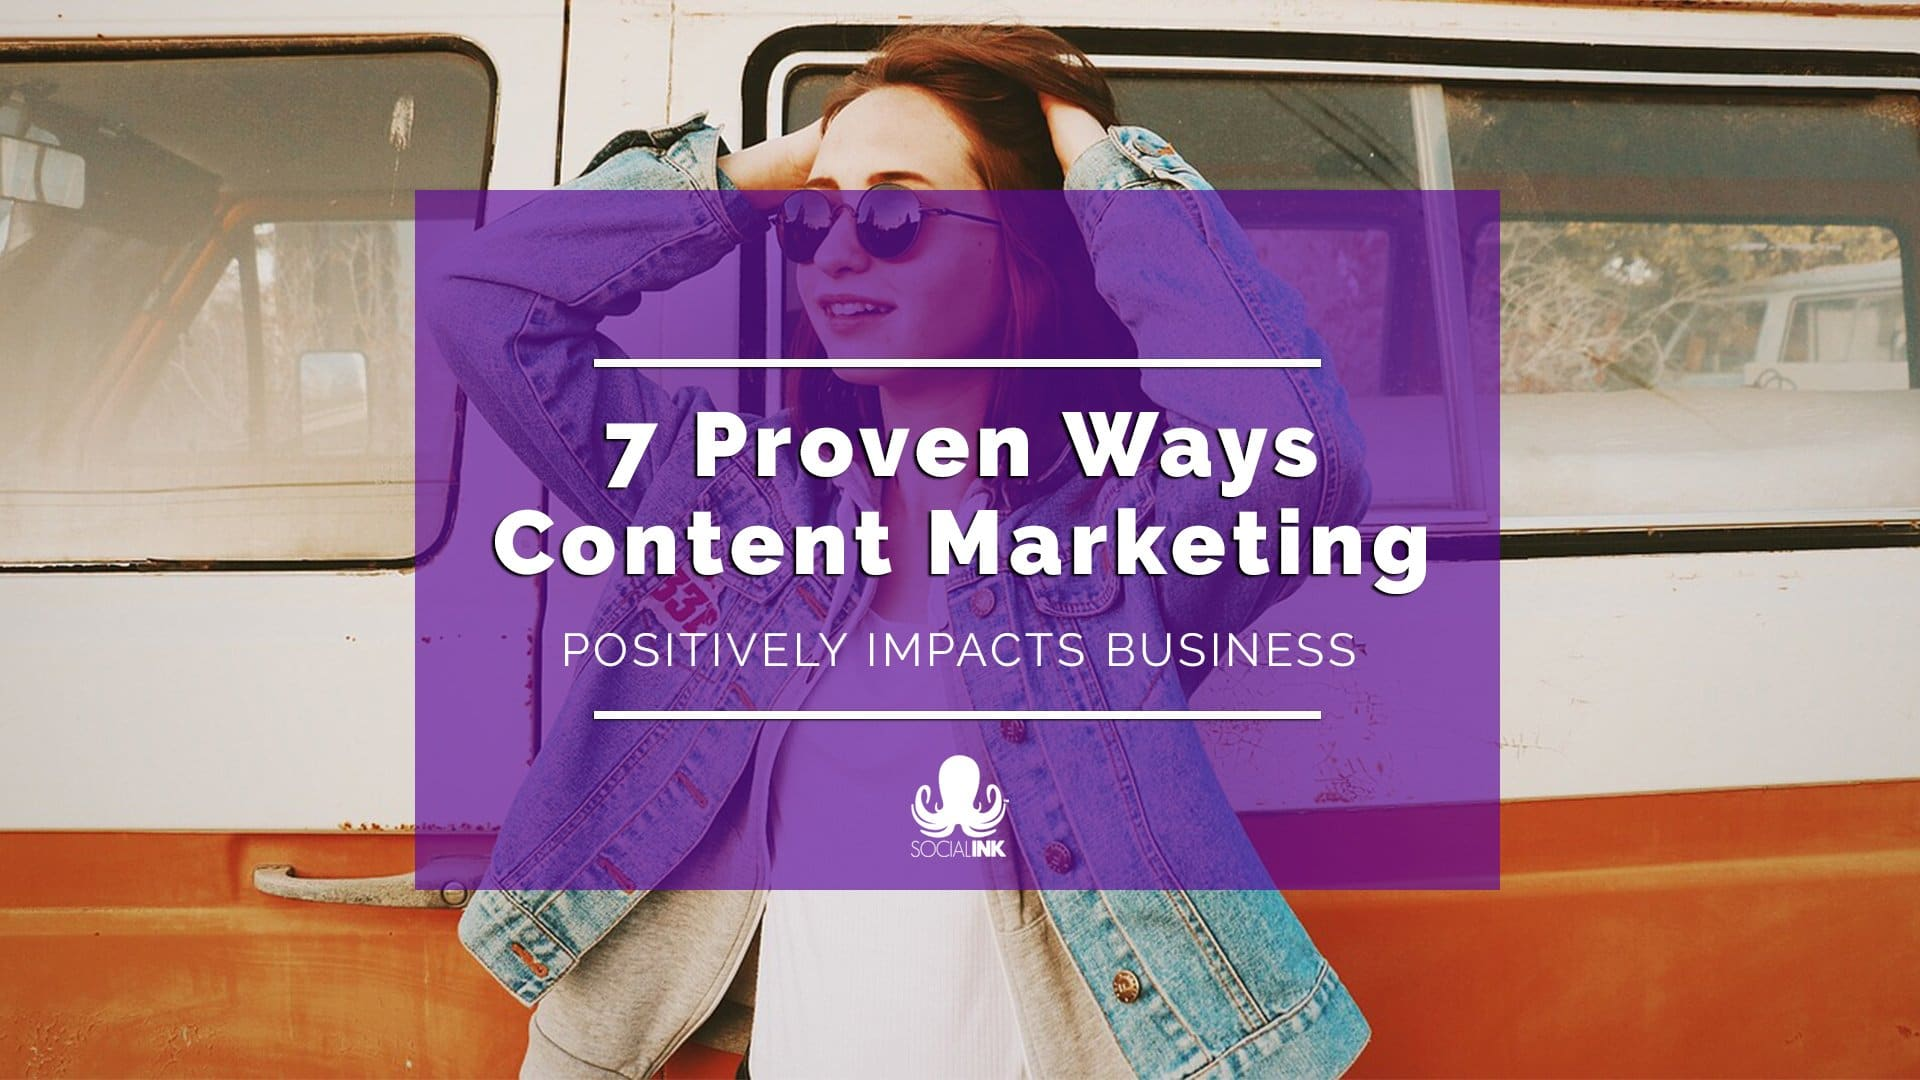 7 Proven Ways Content Marketing Positively Impacts Business